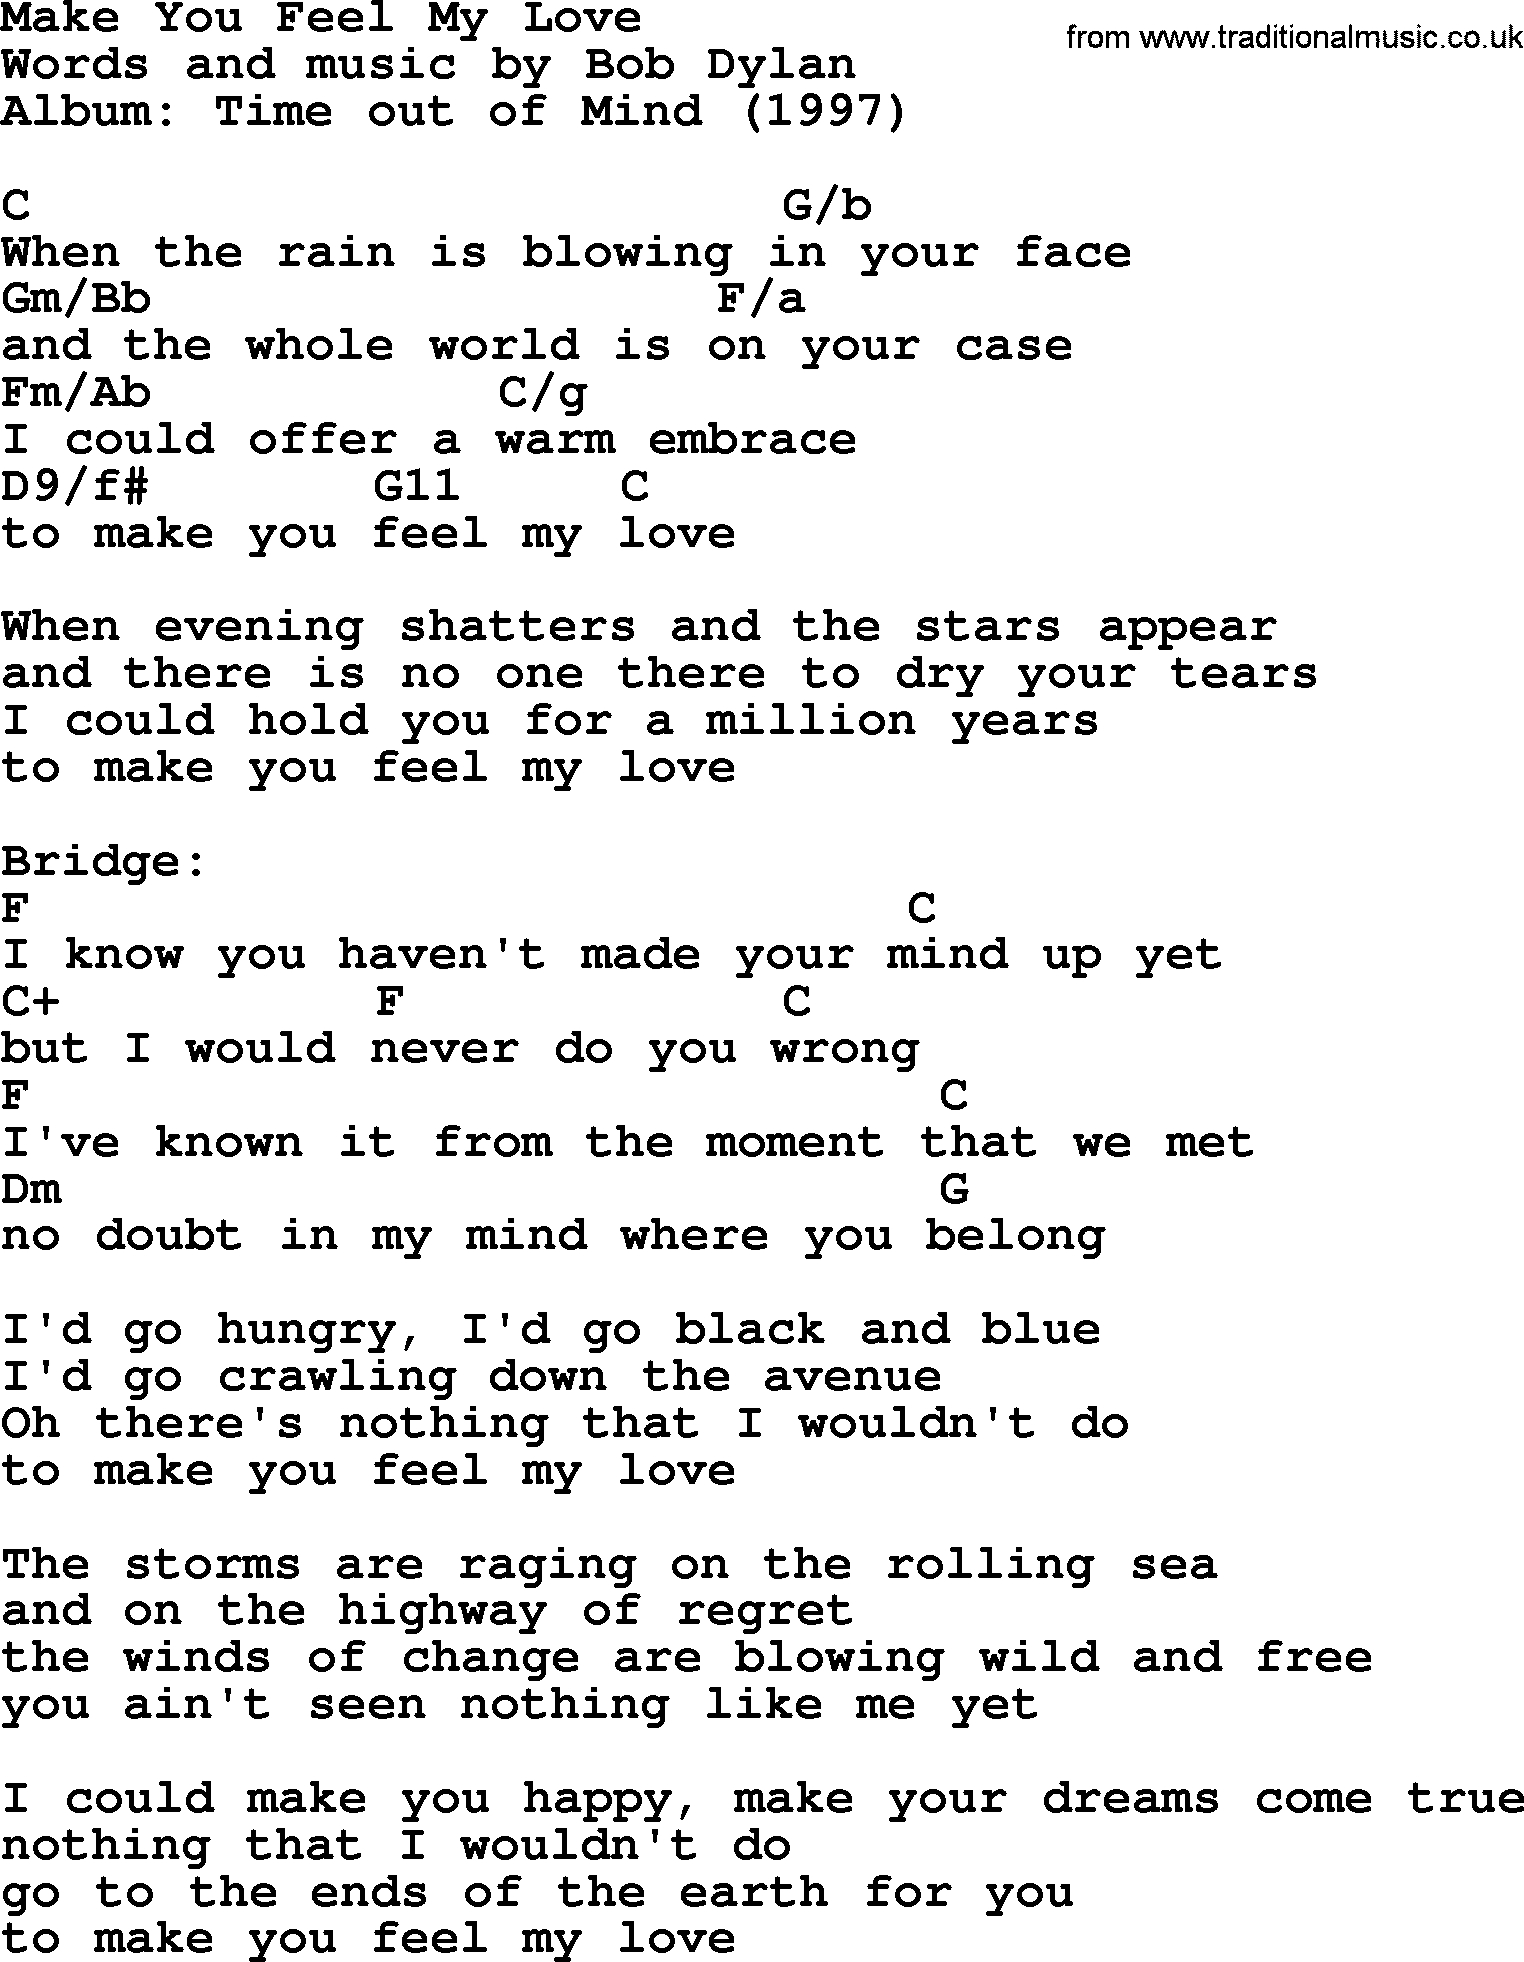 Sea Of Love Chords Bob Dylan Song Make You Feel My Love Lyrics And Chords